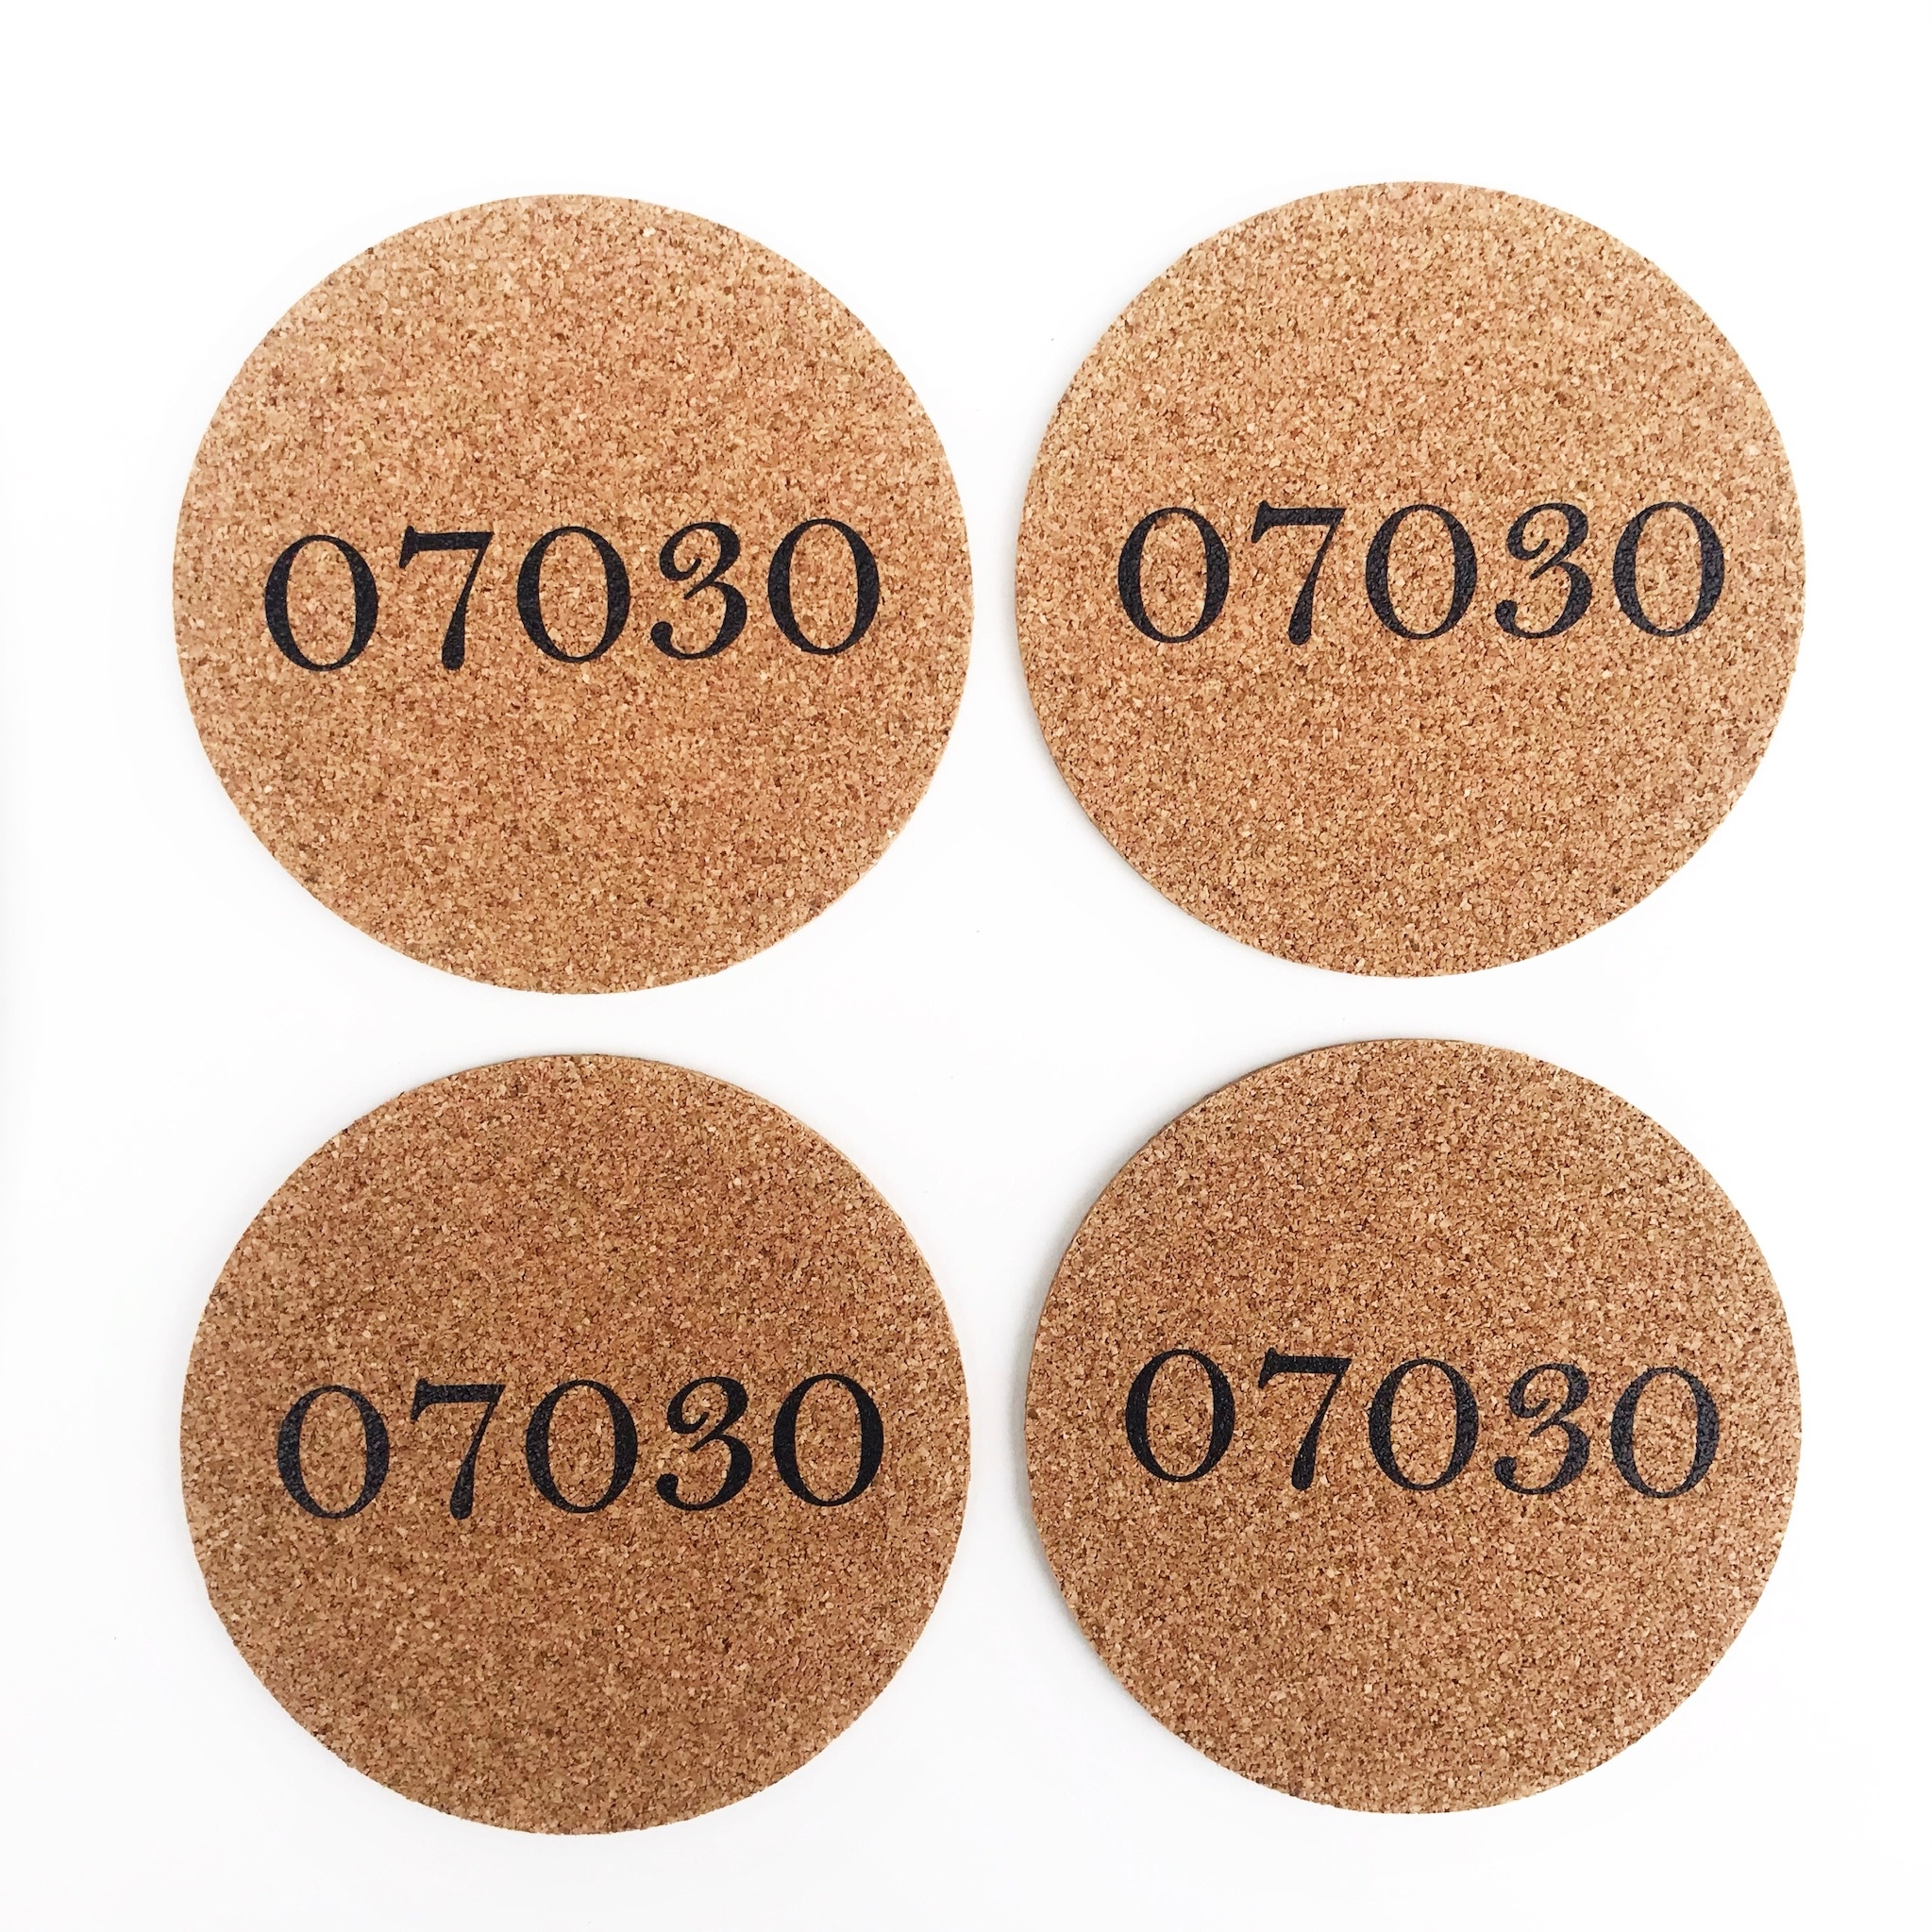 4imprint 07030 Cork Coaster Set (4)